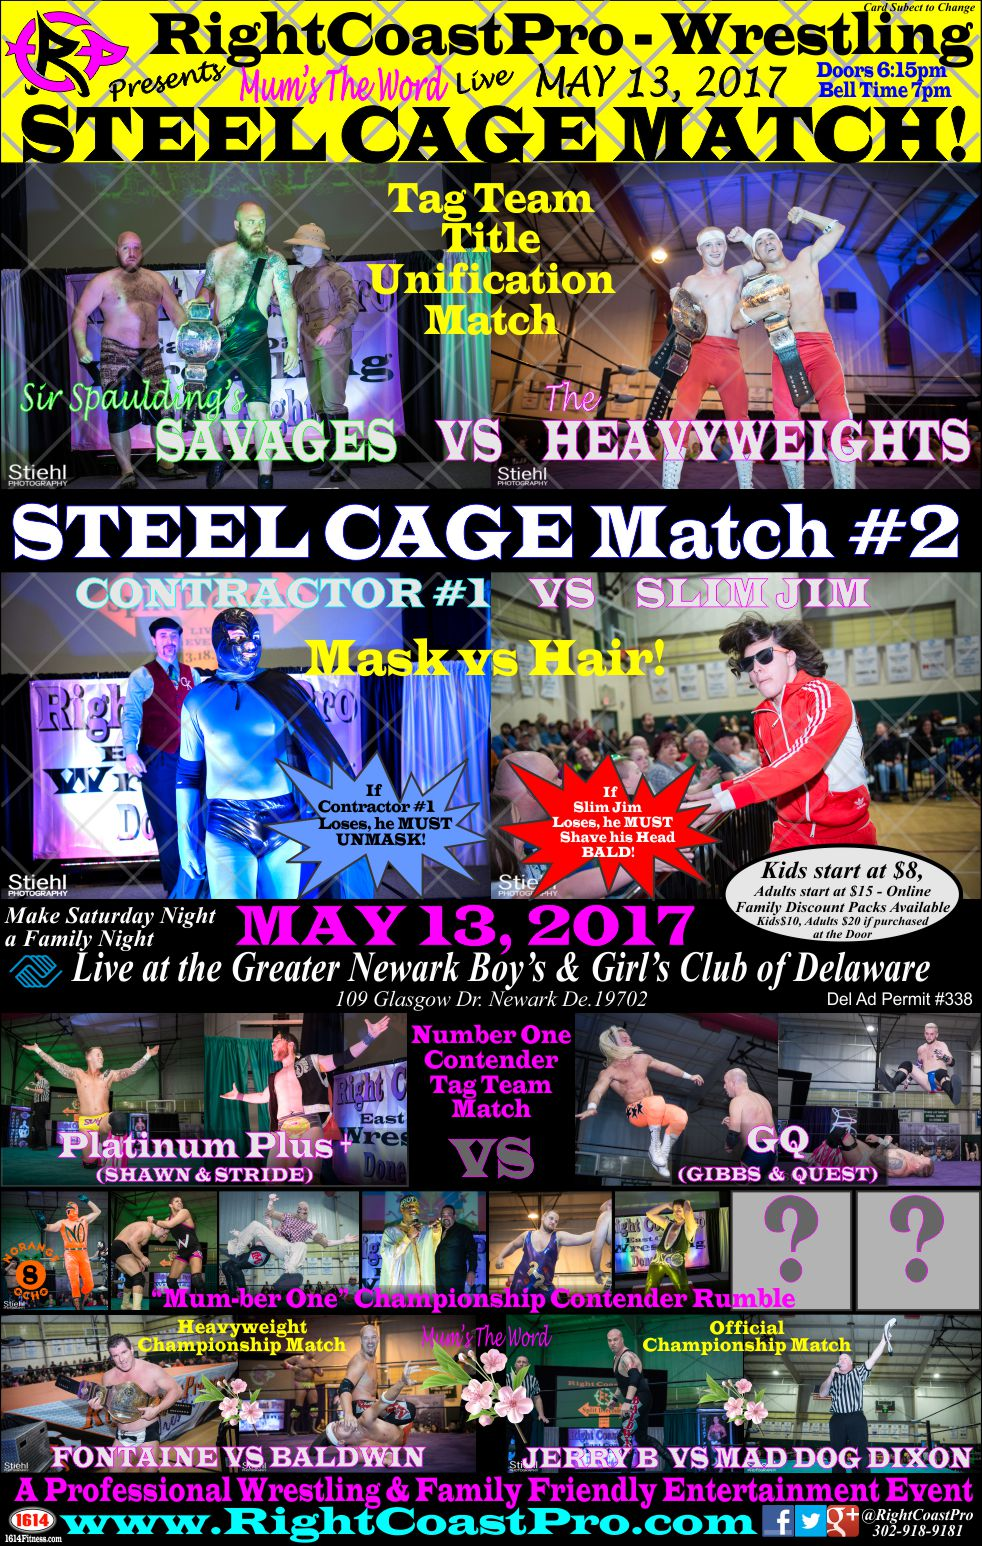 WEB POSTER RCP36 RightCoastProWrestling Delaware Entertainment Event